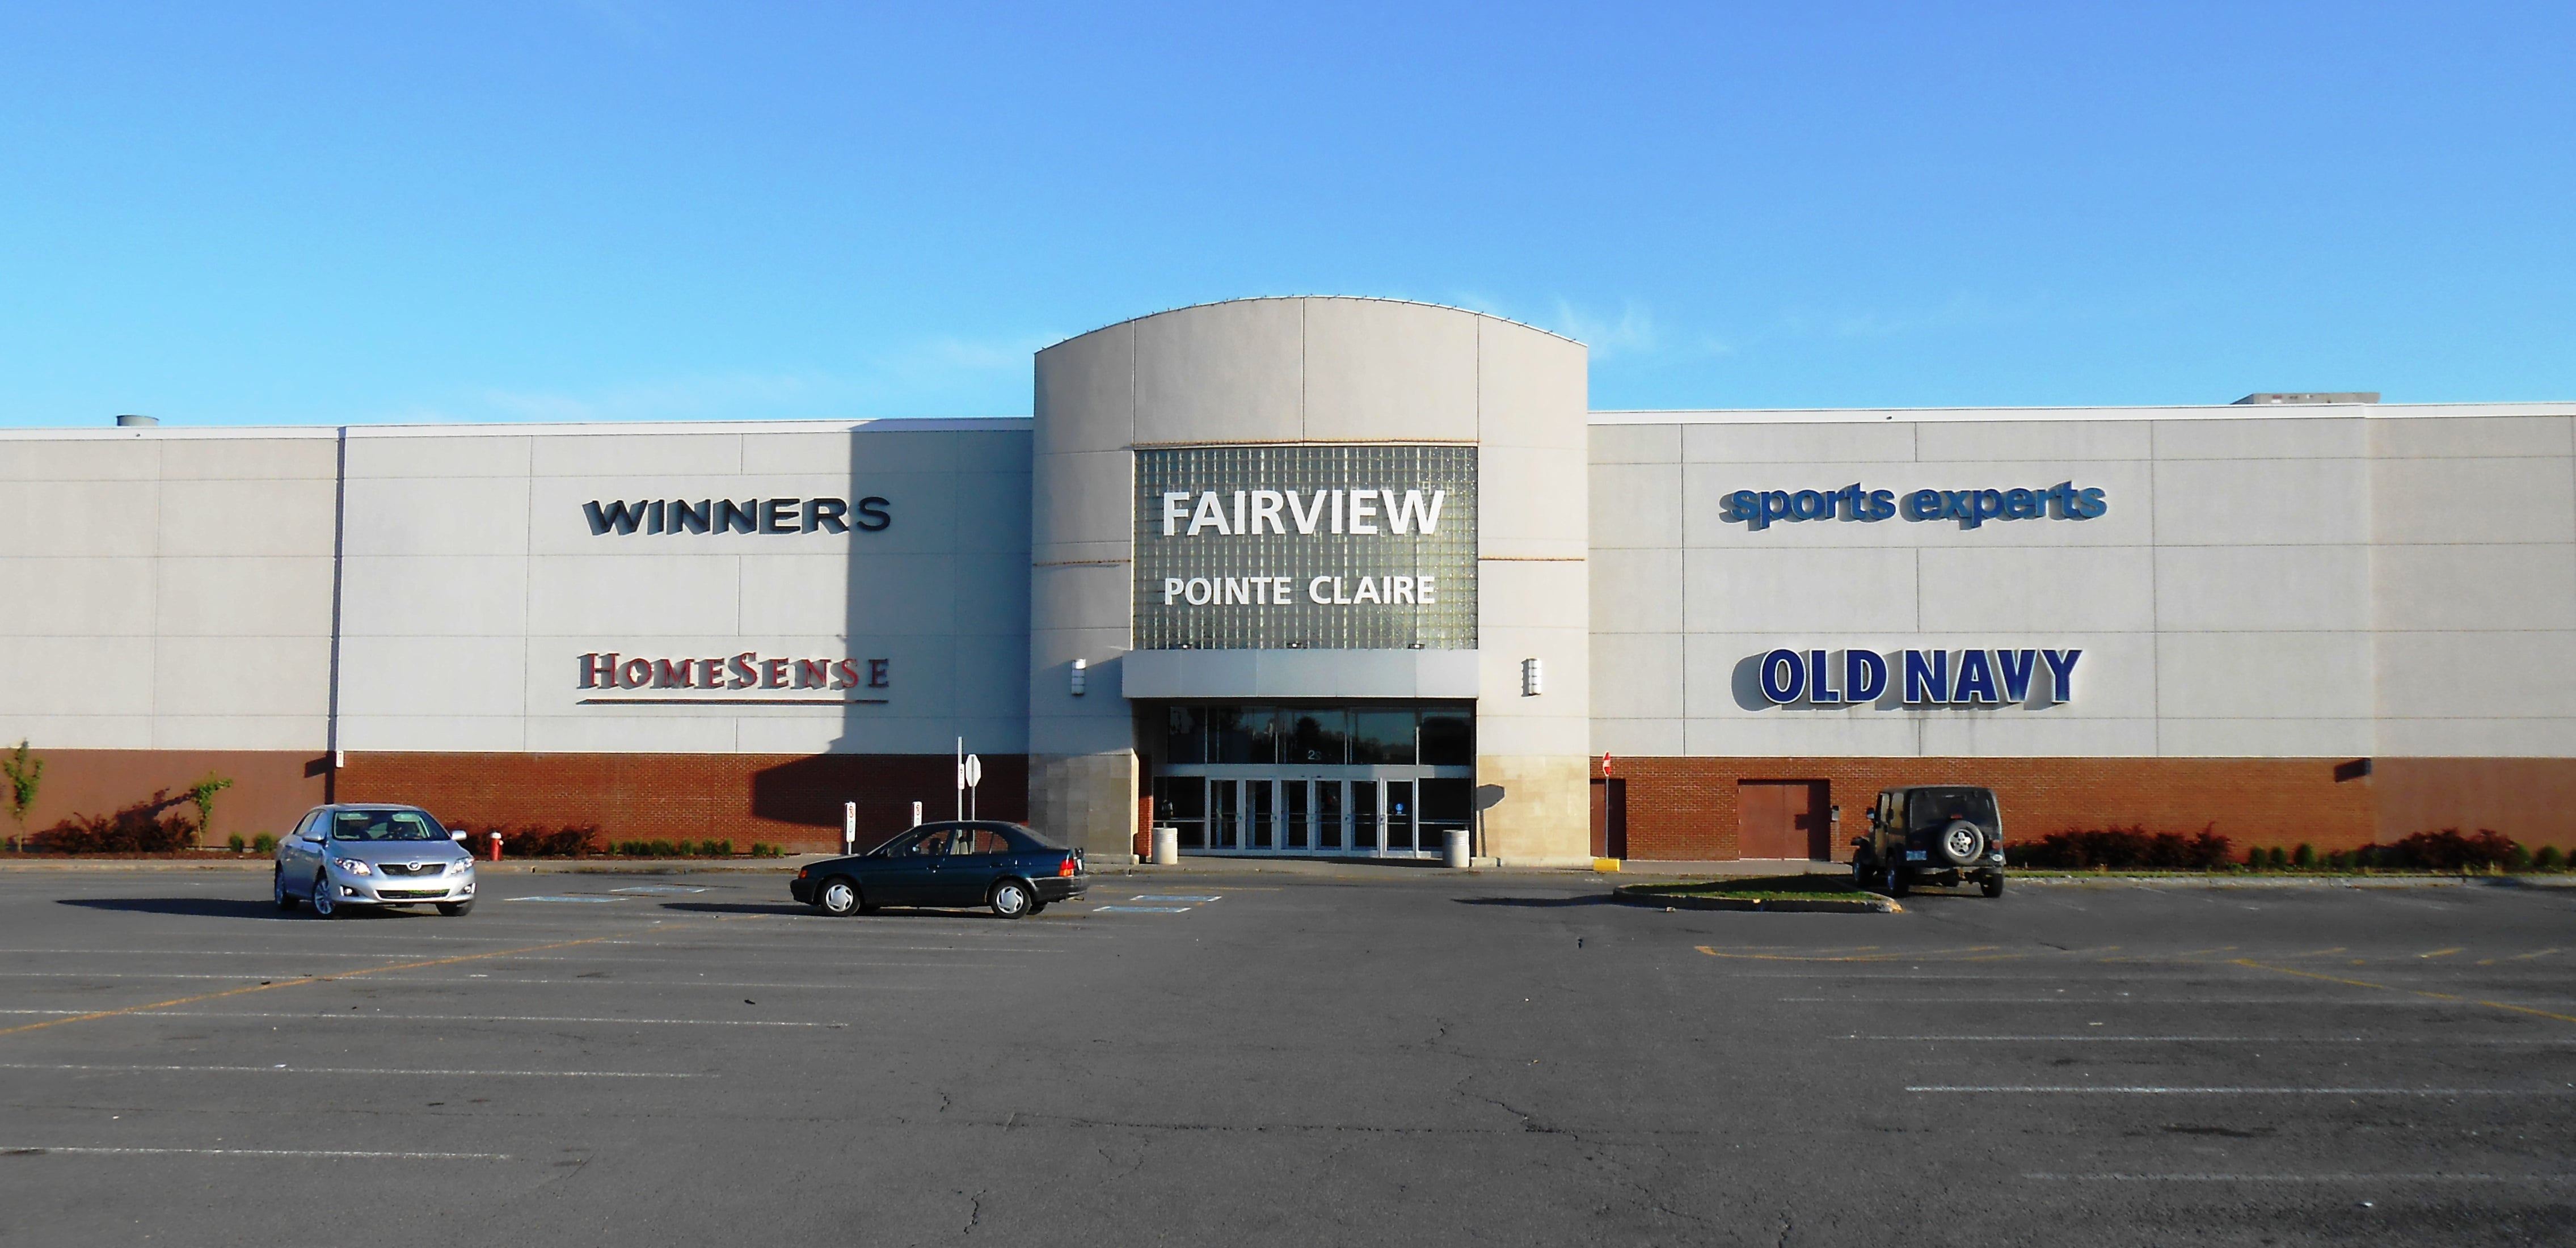 Fairview Pointe Claire